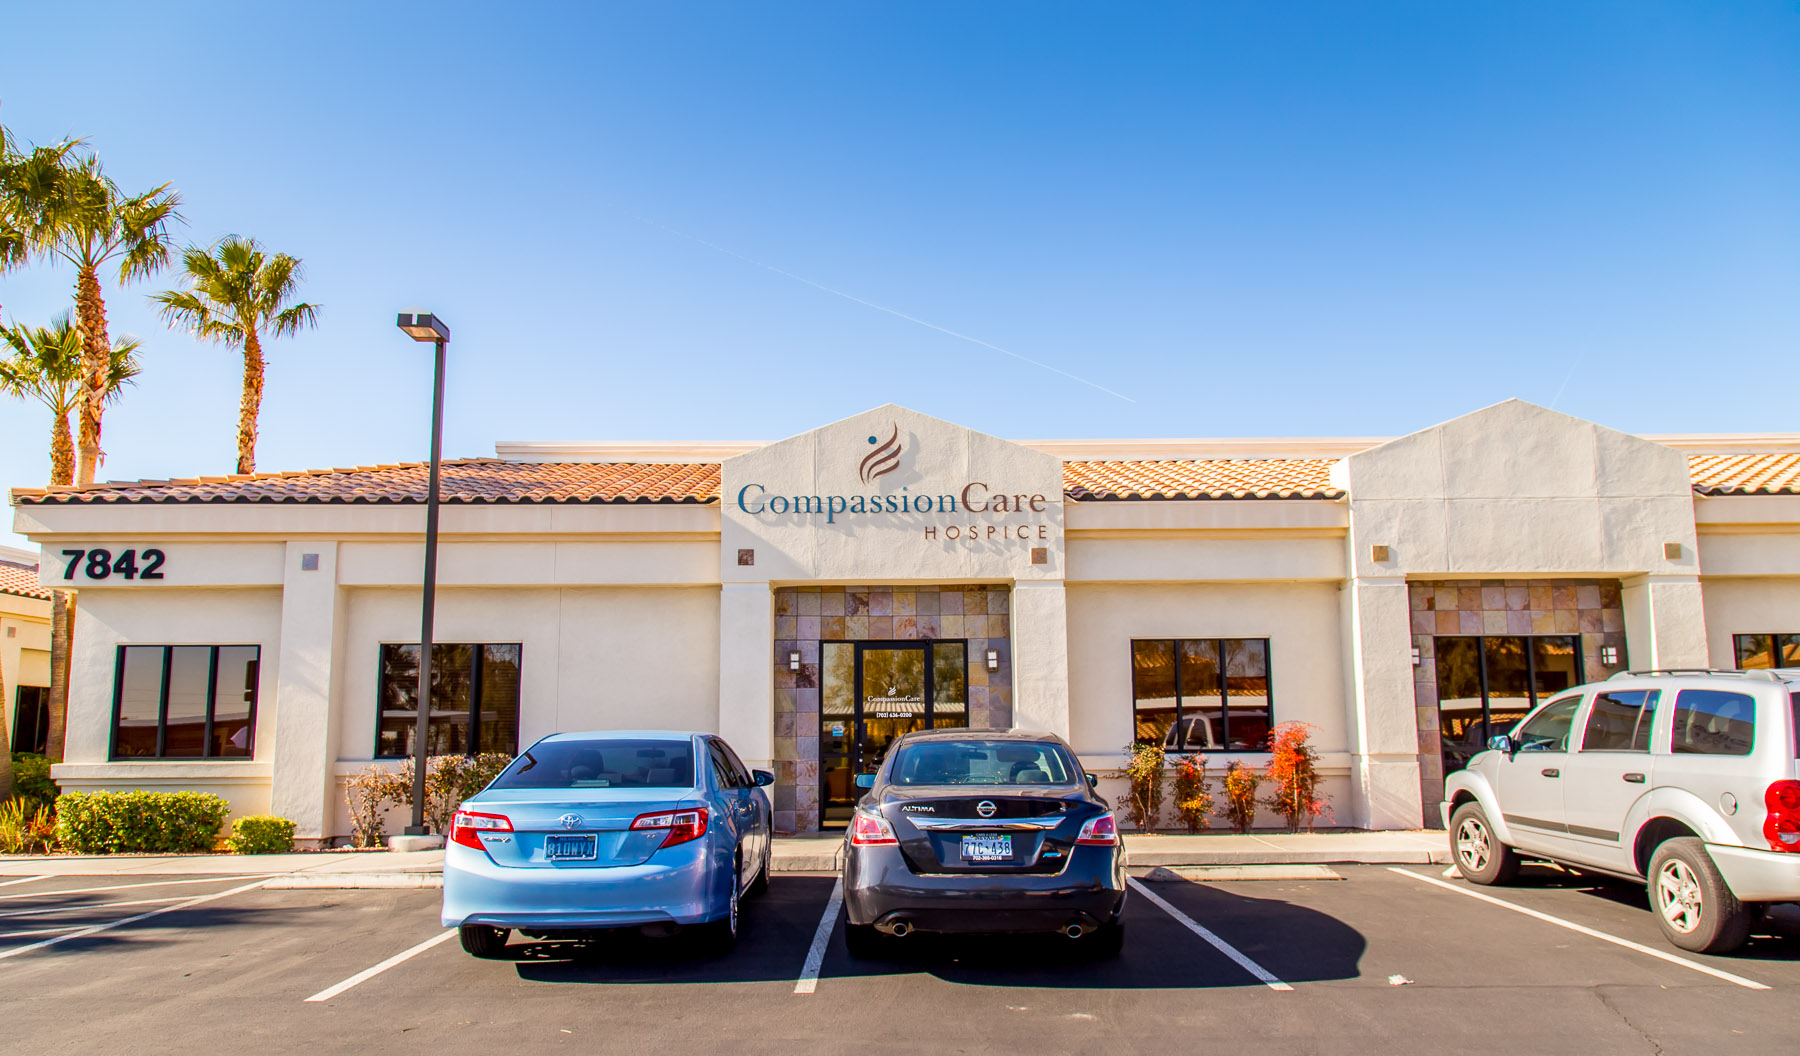 CompassionCare Hospice of Las Vegas, Nevada - Front of Building Location